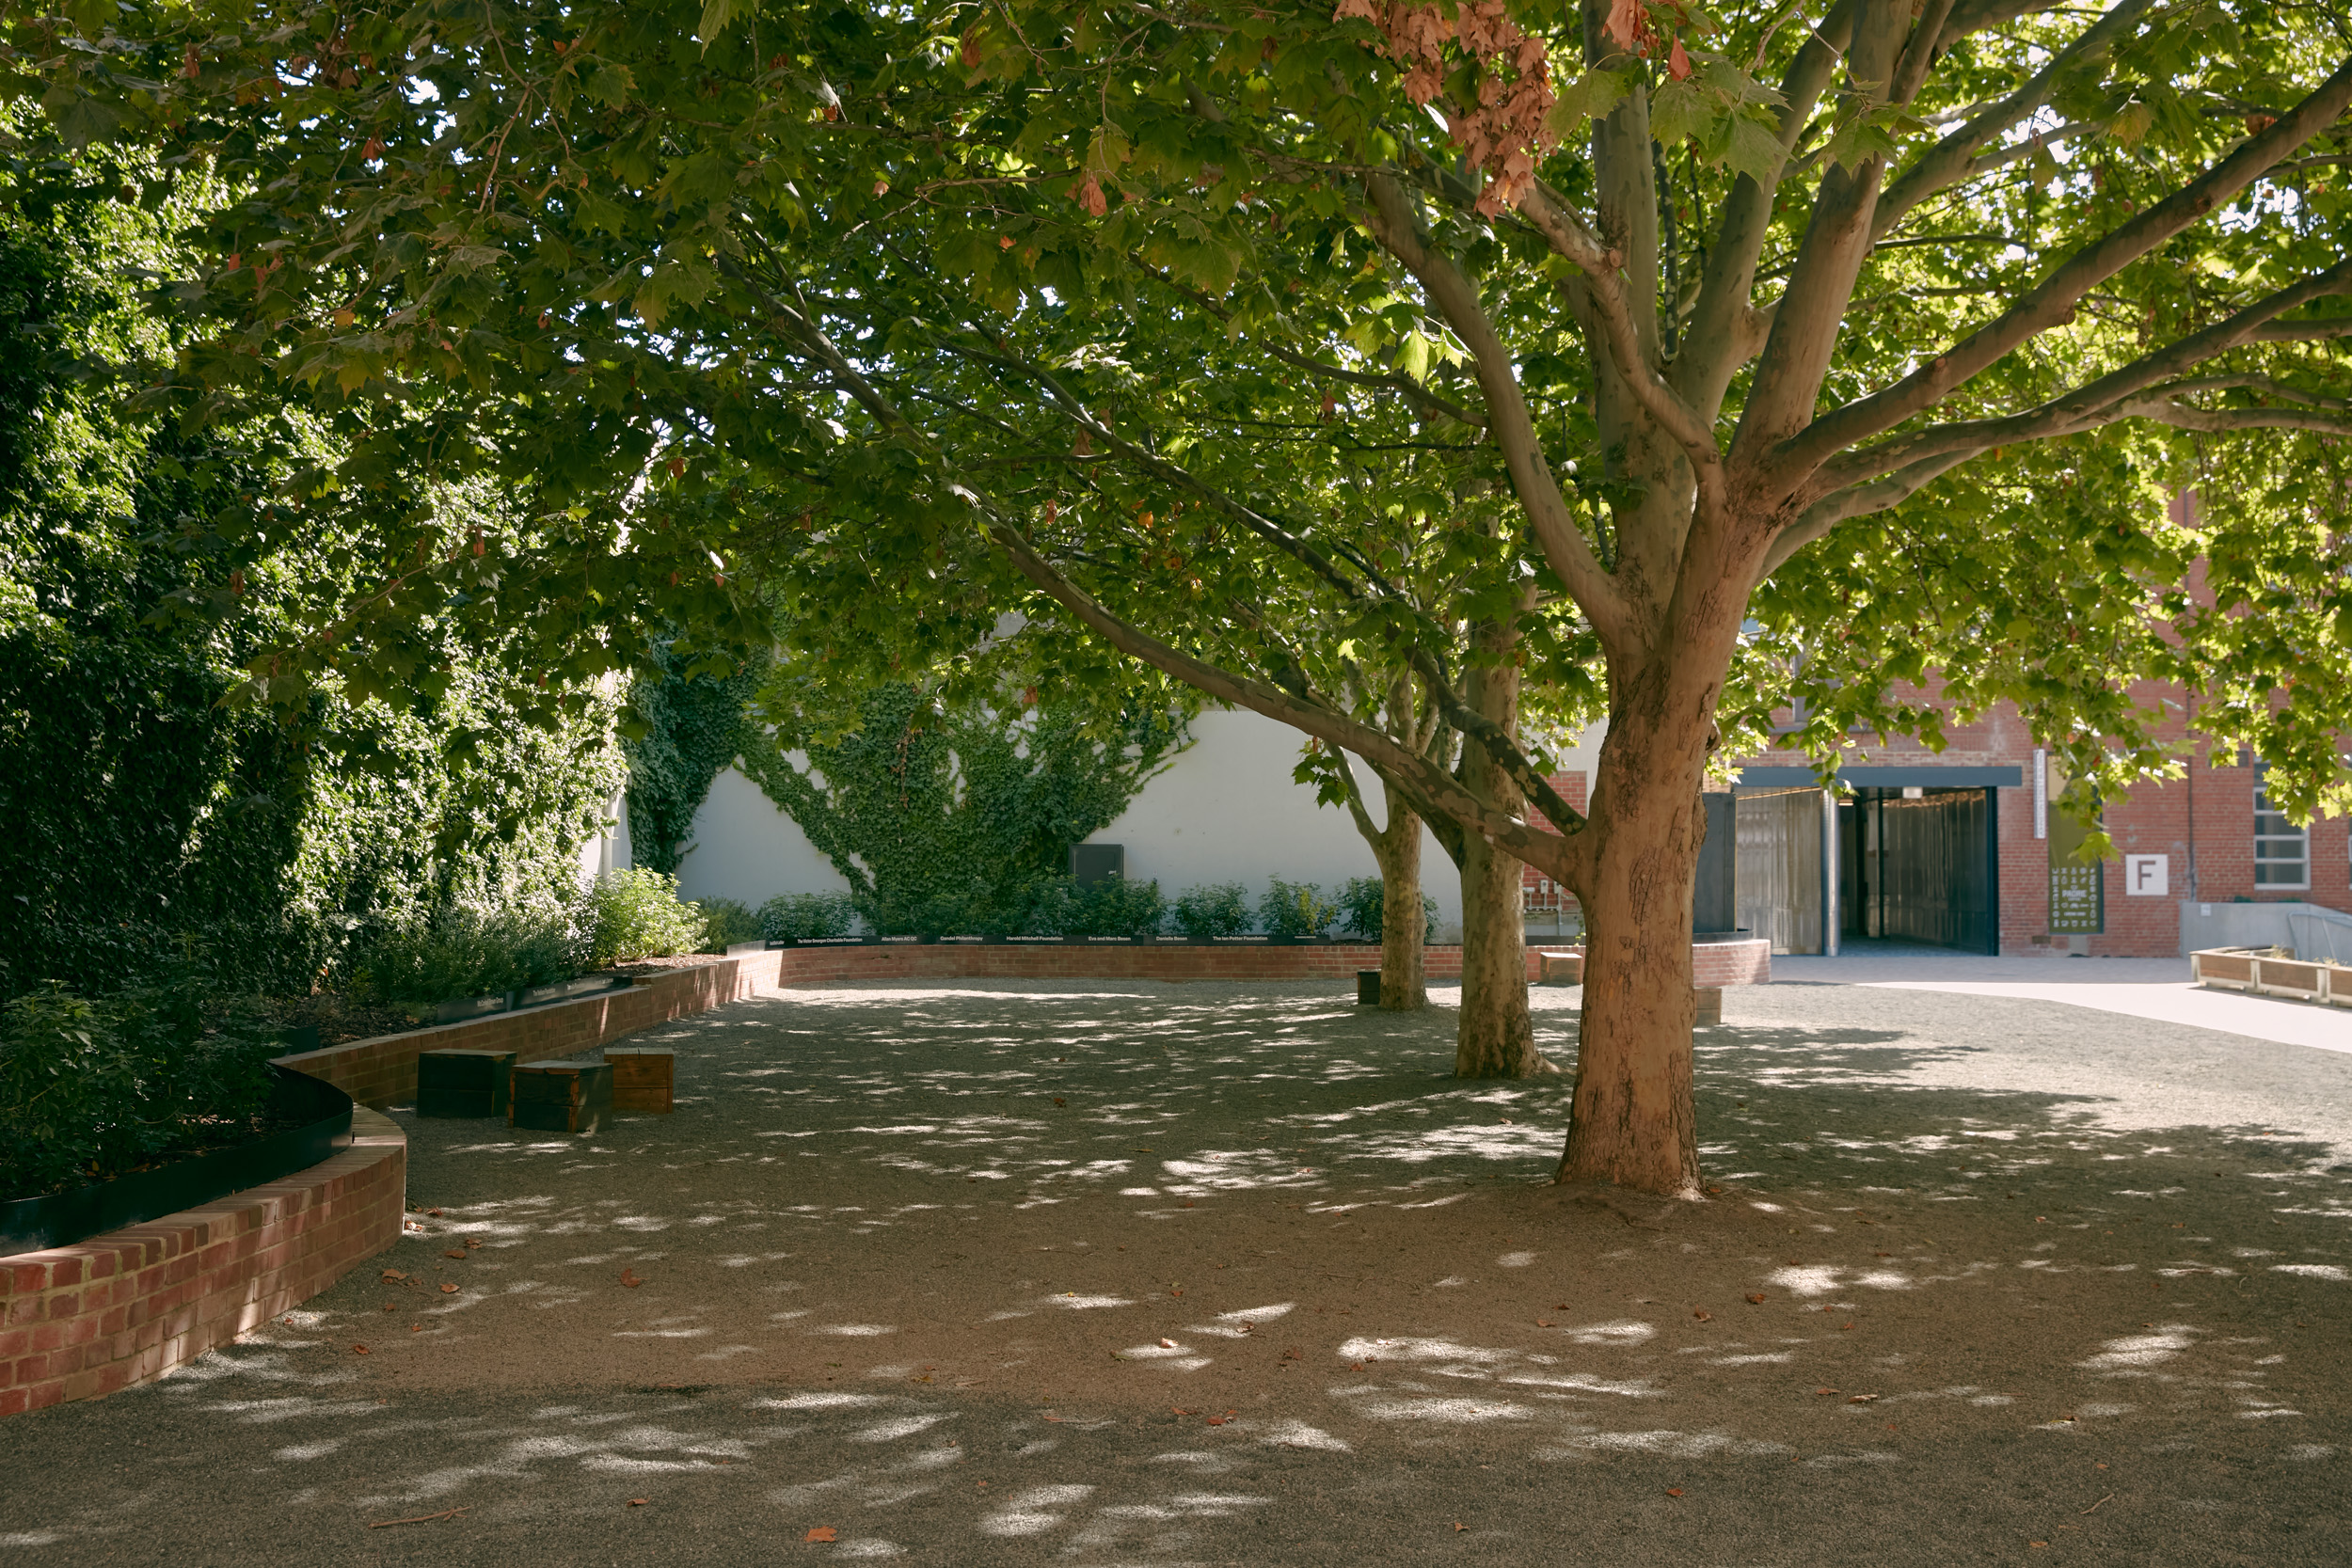 Empty courtyard with shady trees